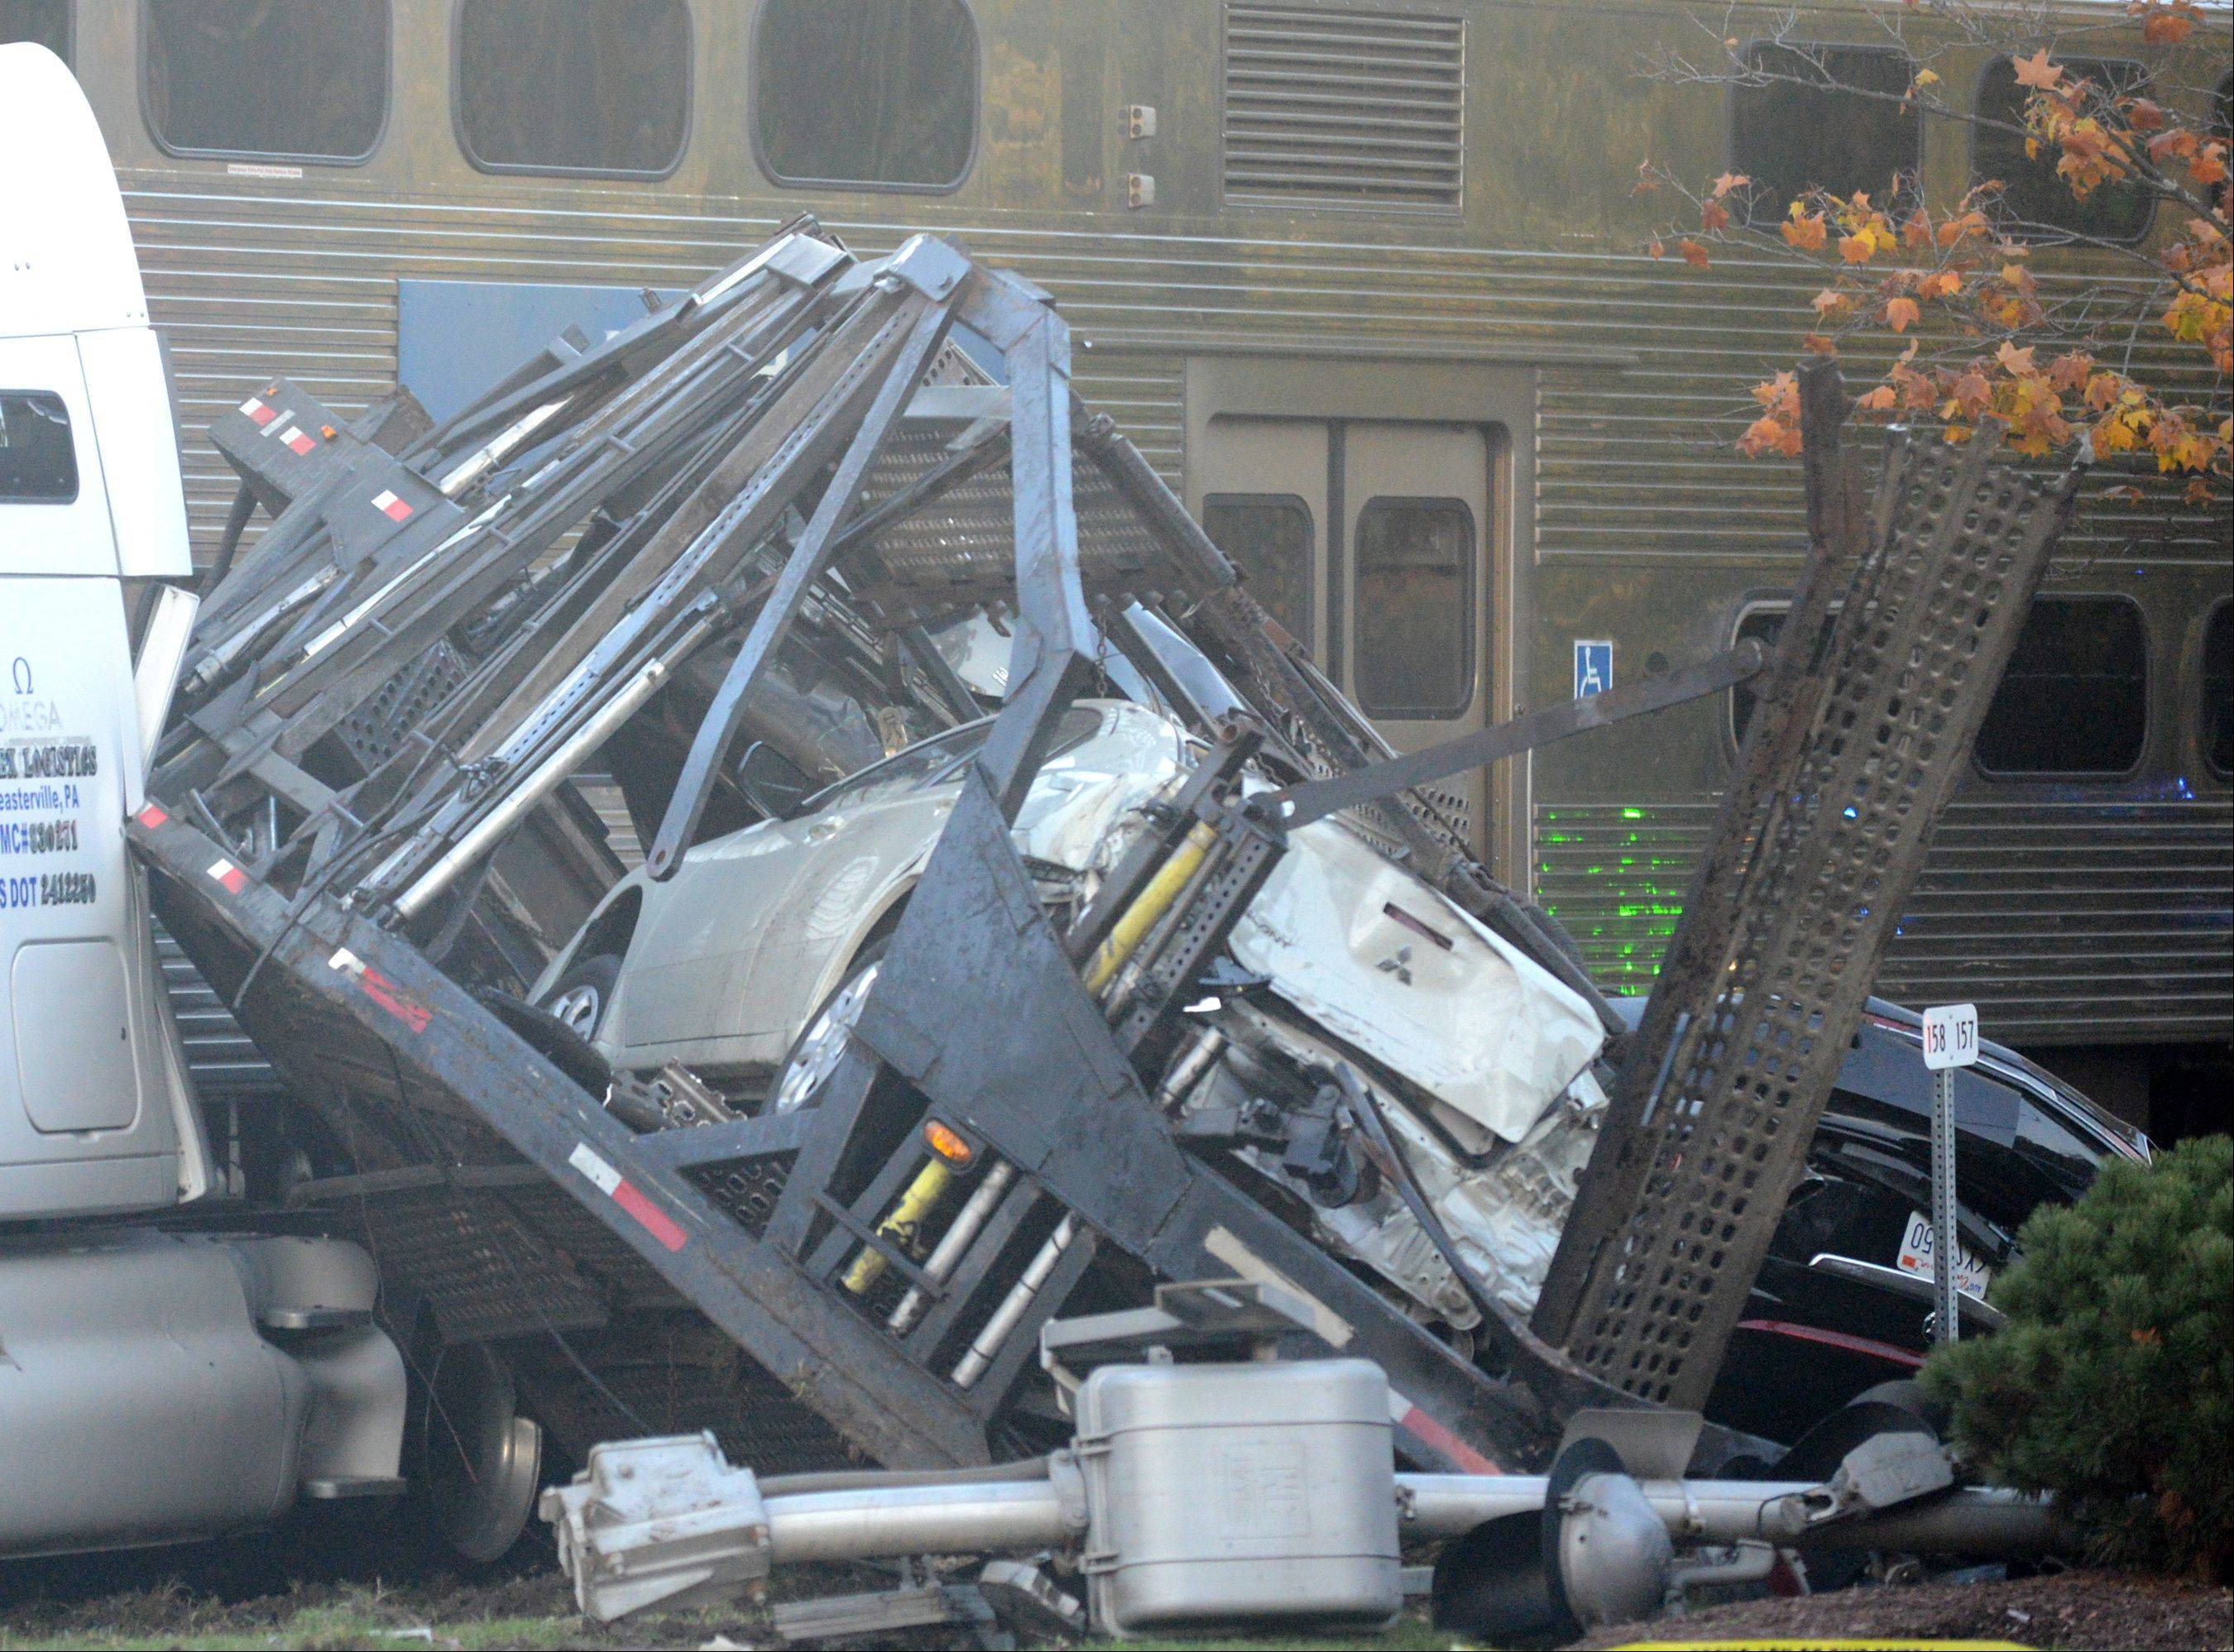 A Metra commuter train on Monday evening just west of the Bartlett train station struck a semitrailer truck loaded with automobiles.